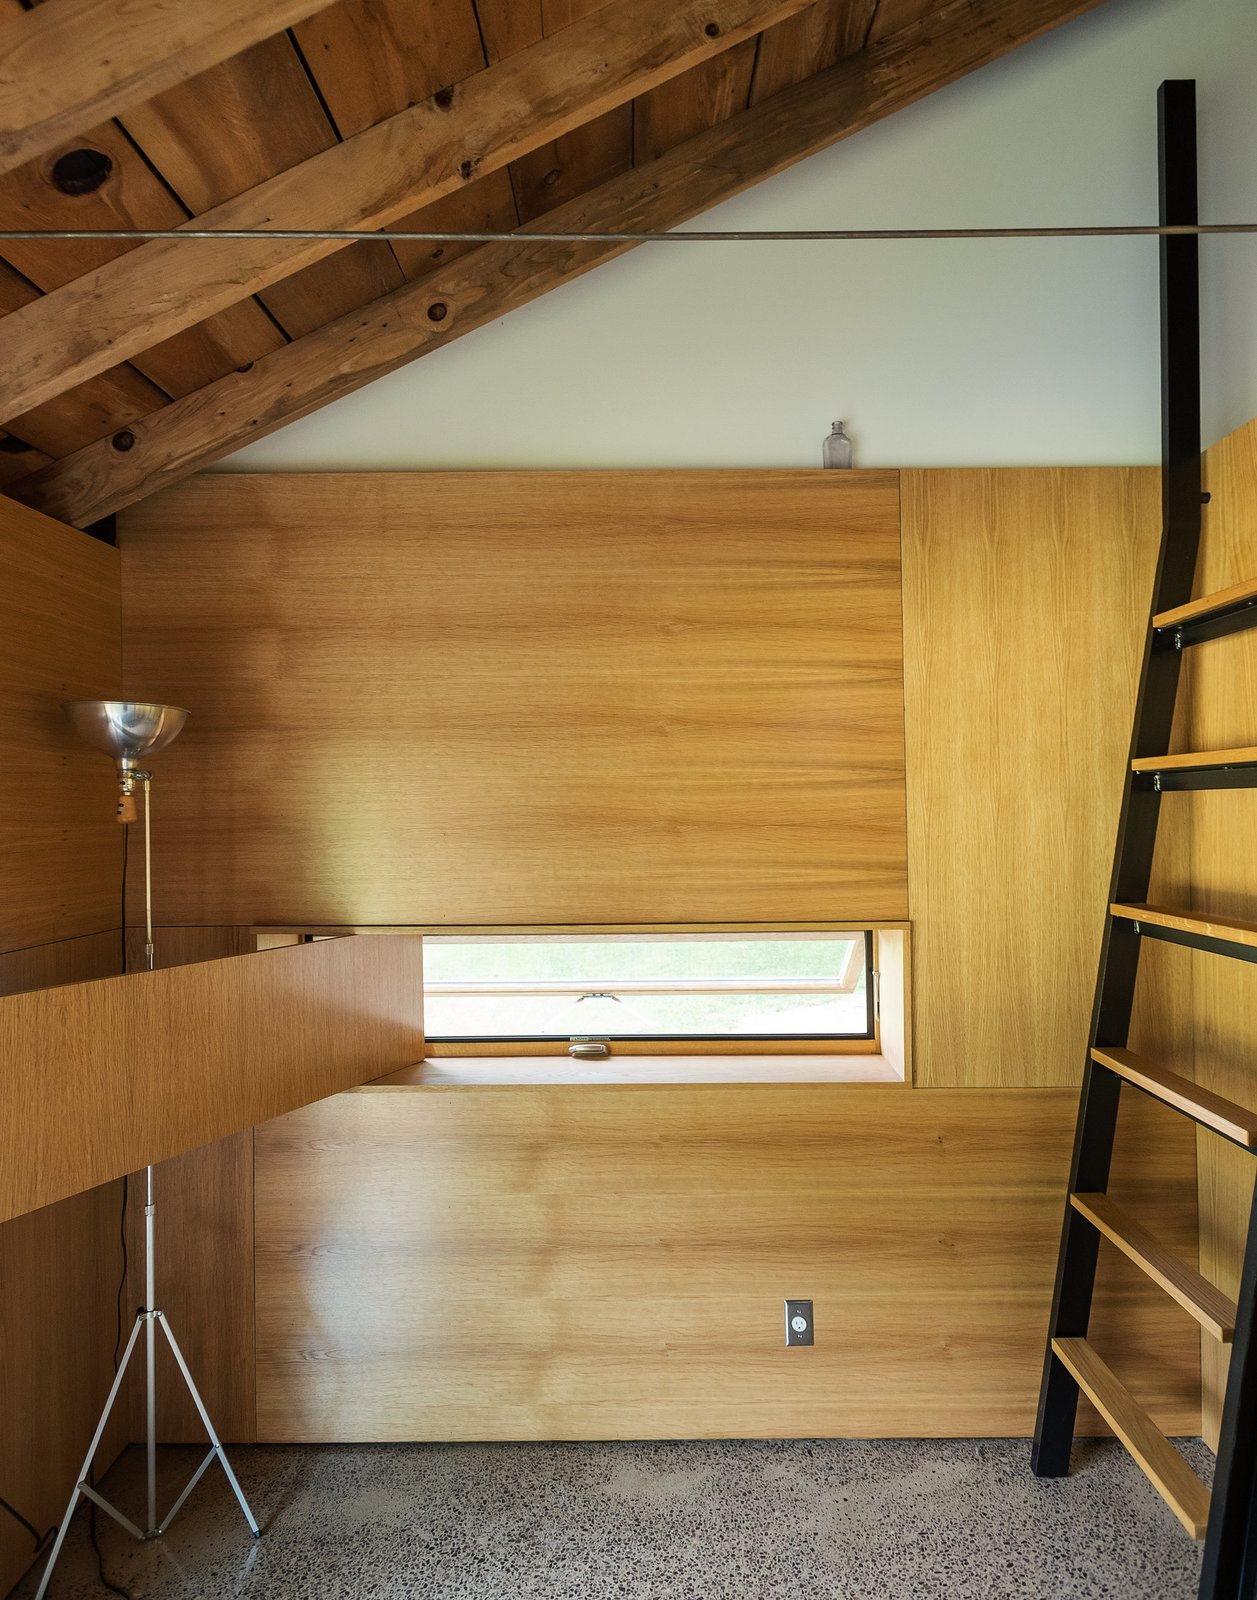 A custom ladder made of bent steel with oak treads leads to the sleeping loft, while a white oak panel swings opens to reveal an inset window. Longtime collaborator Jeffrey Kramer crafted the home's wood elements.